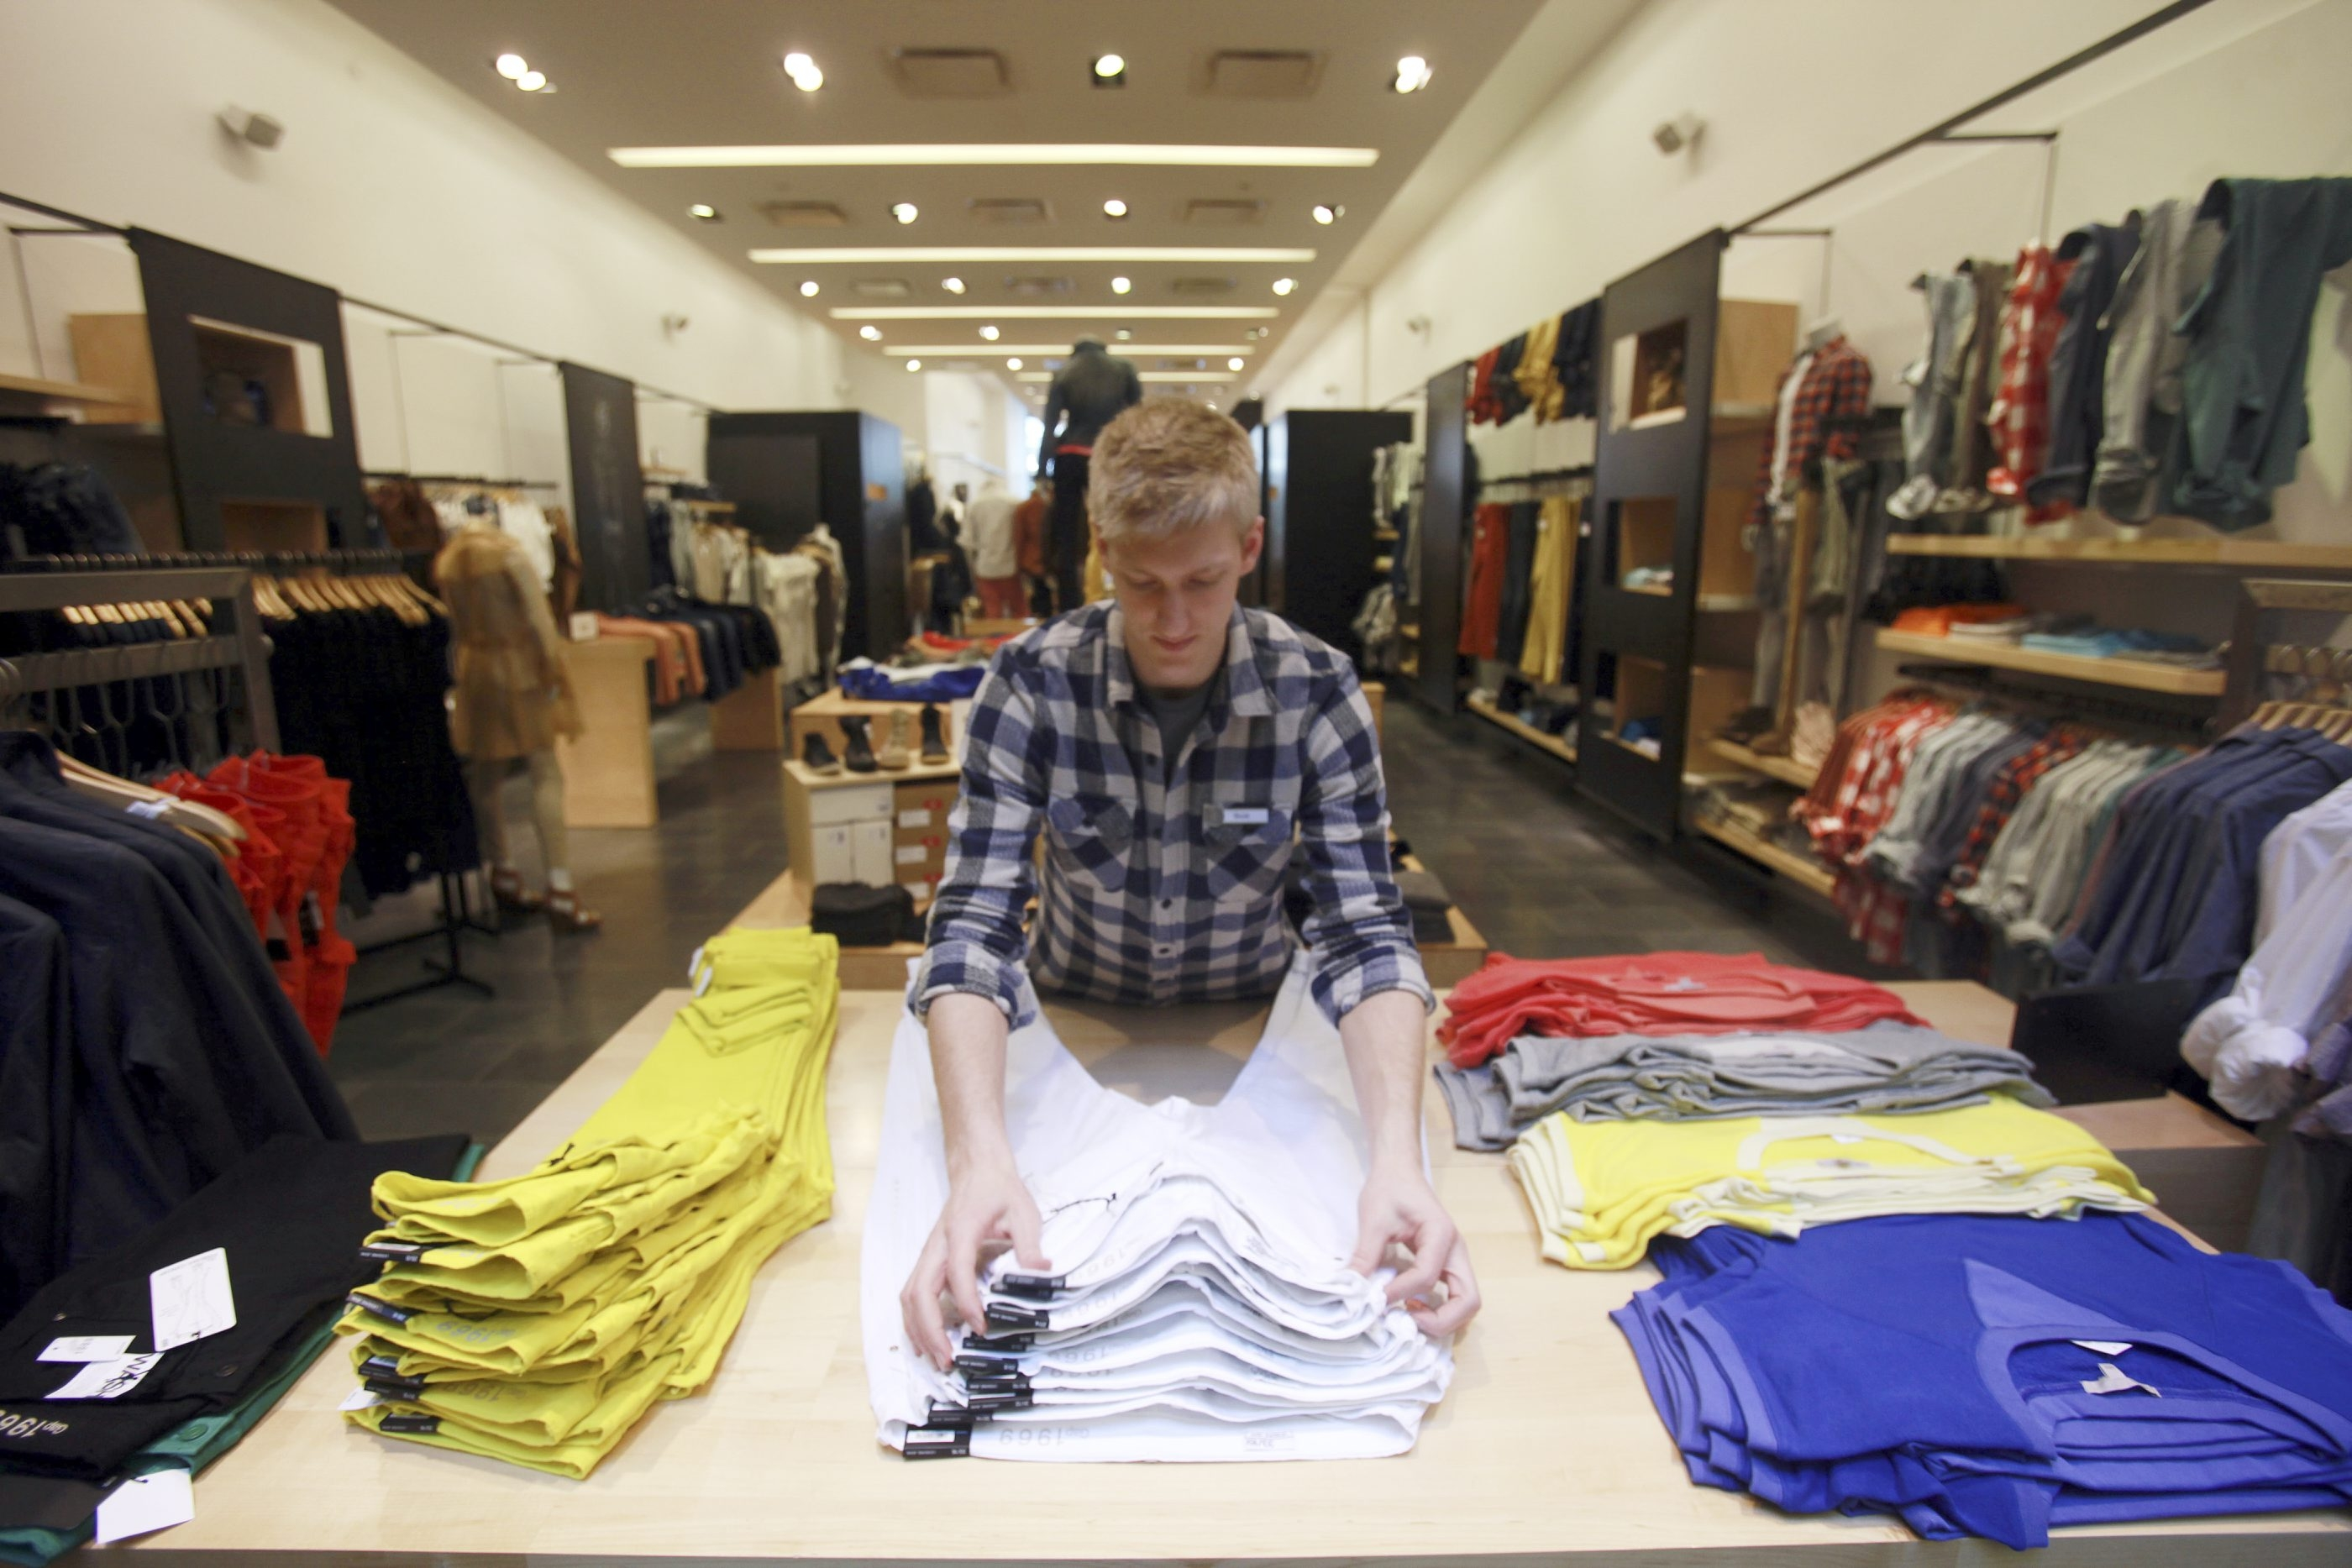 Gap is closing 175 of its 675 stores across North America in an effort to restore its brand after a long sales slump.